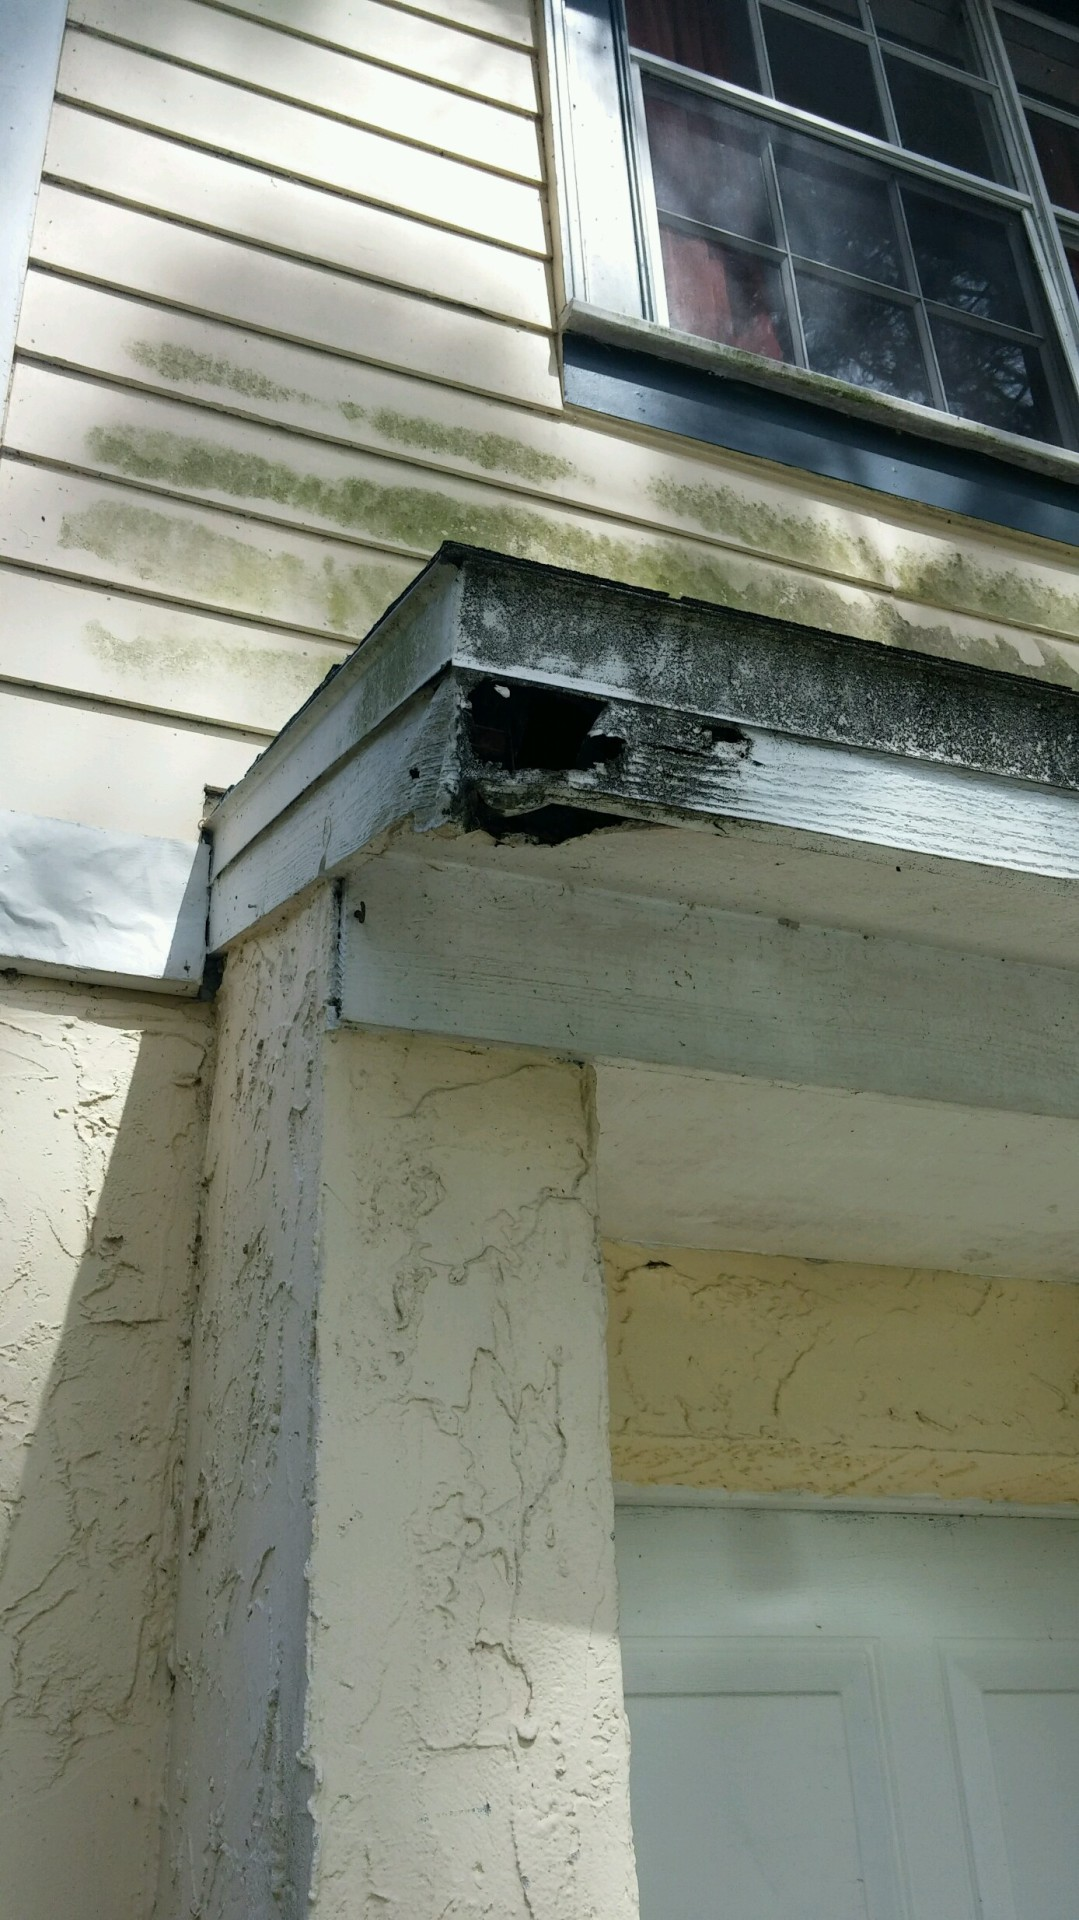 Squirrel damage at a house in Leesburg